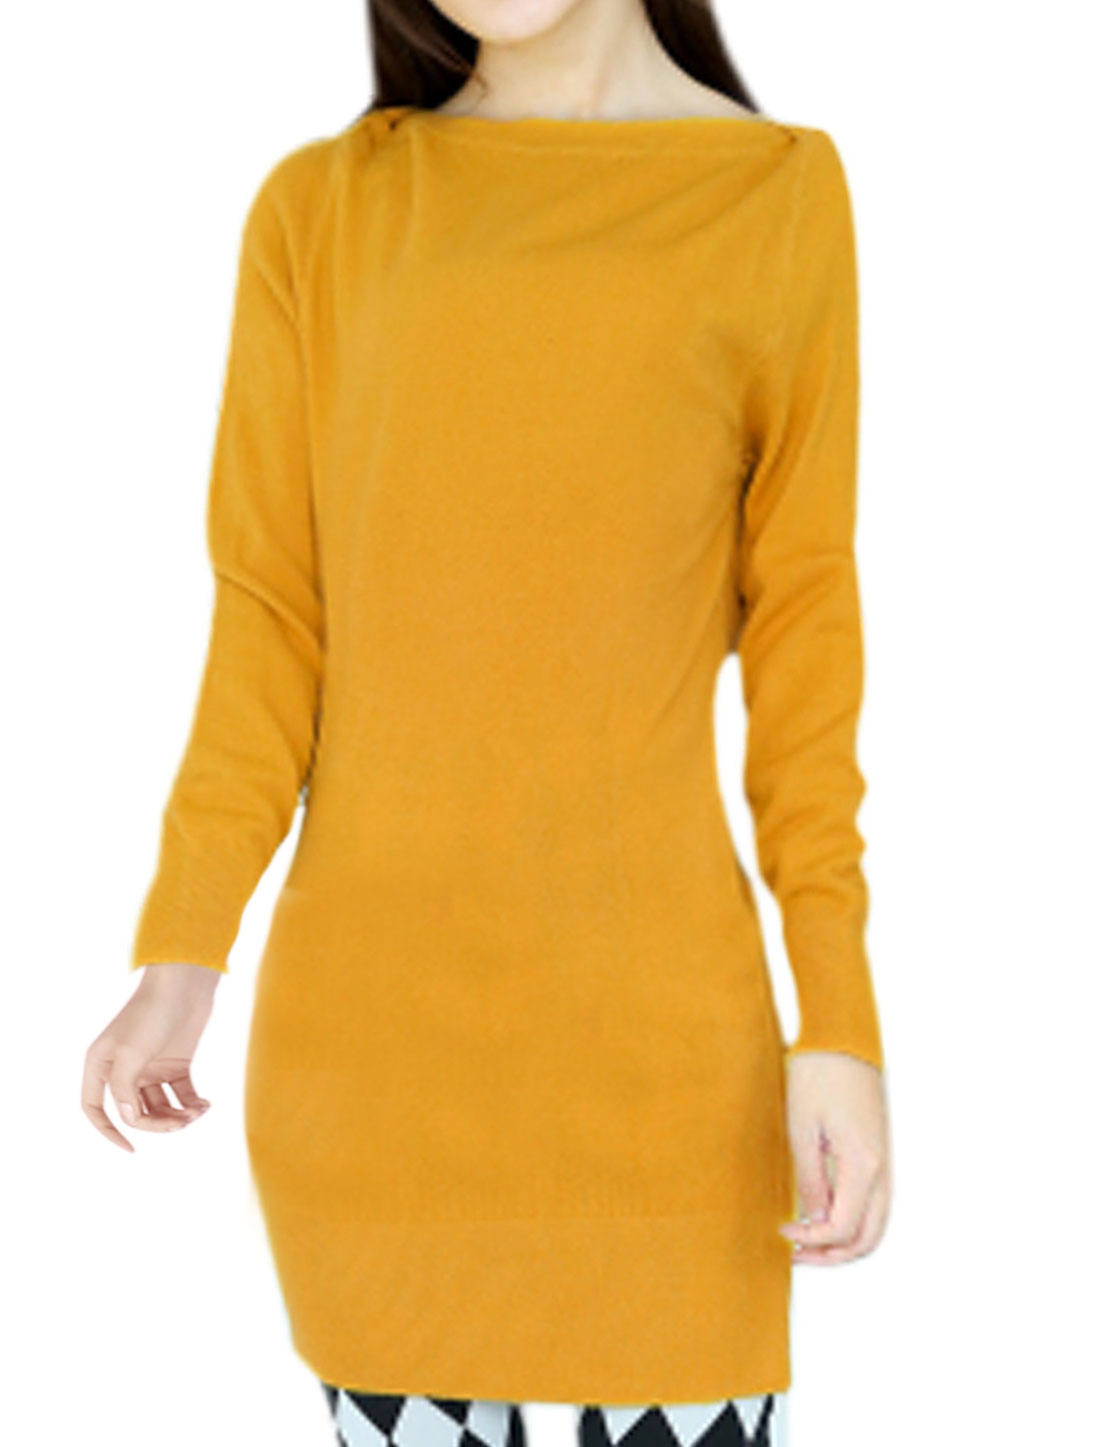 Lady Long Sleeves Boat Neck Stretchy Yellow Tunic Knit Top S